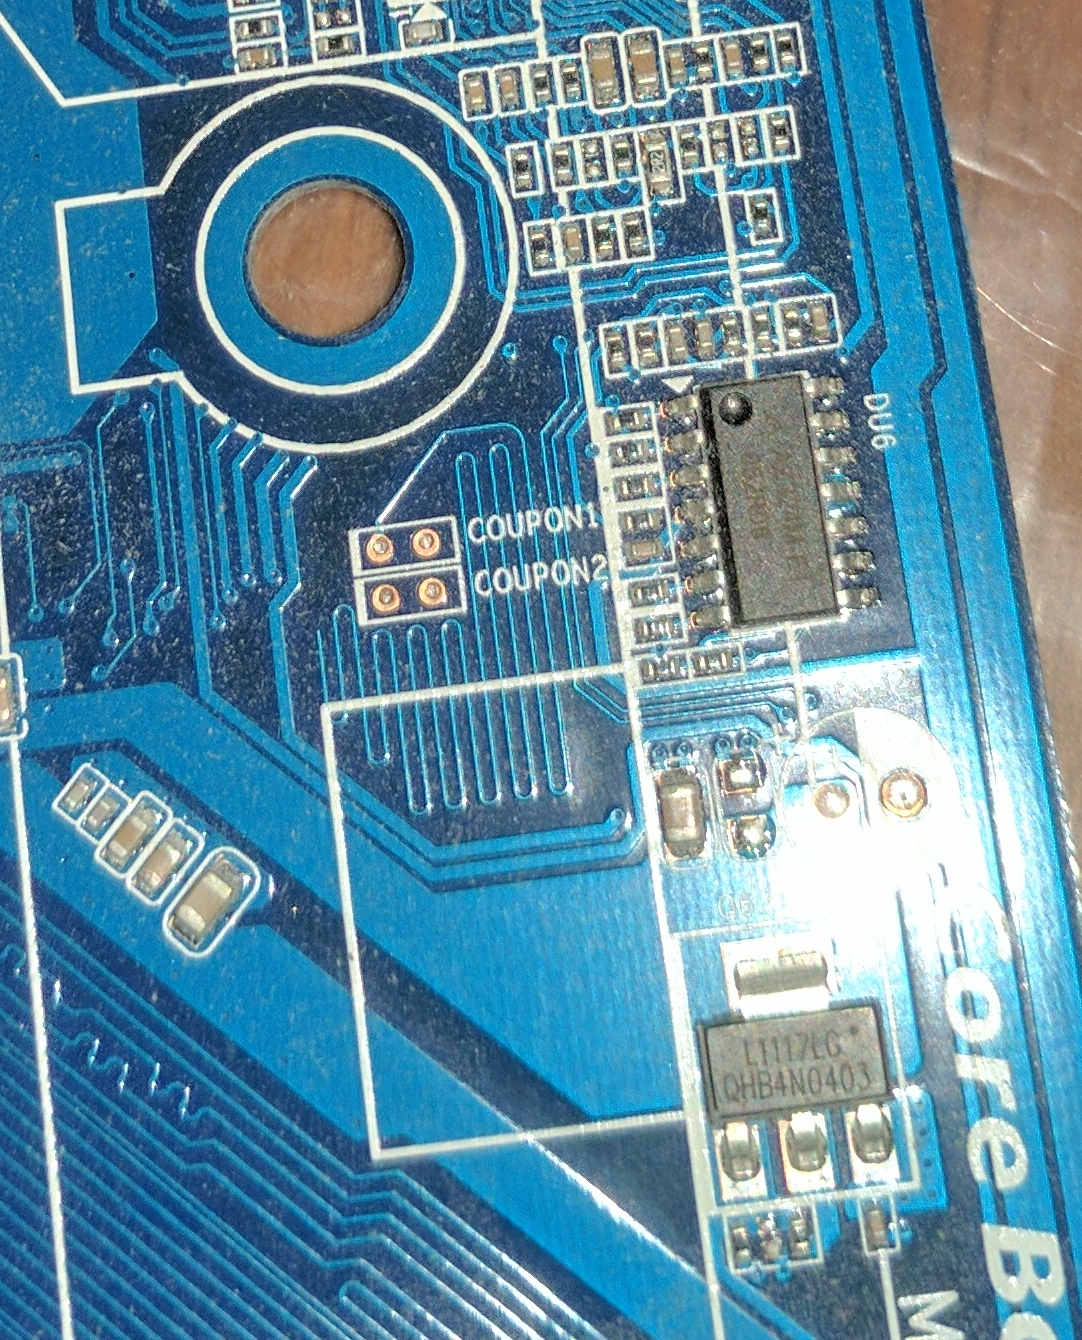 TIL: Gigabyte Coupon1 Coupon2 PCB pads are for impedance testing